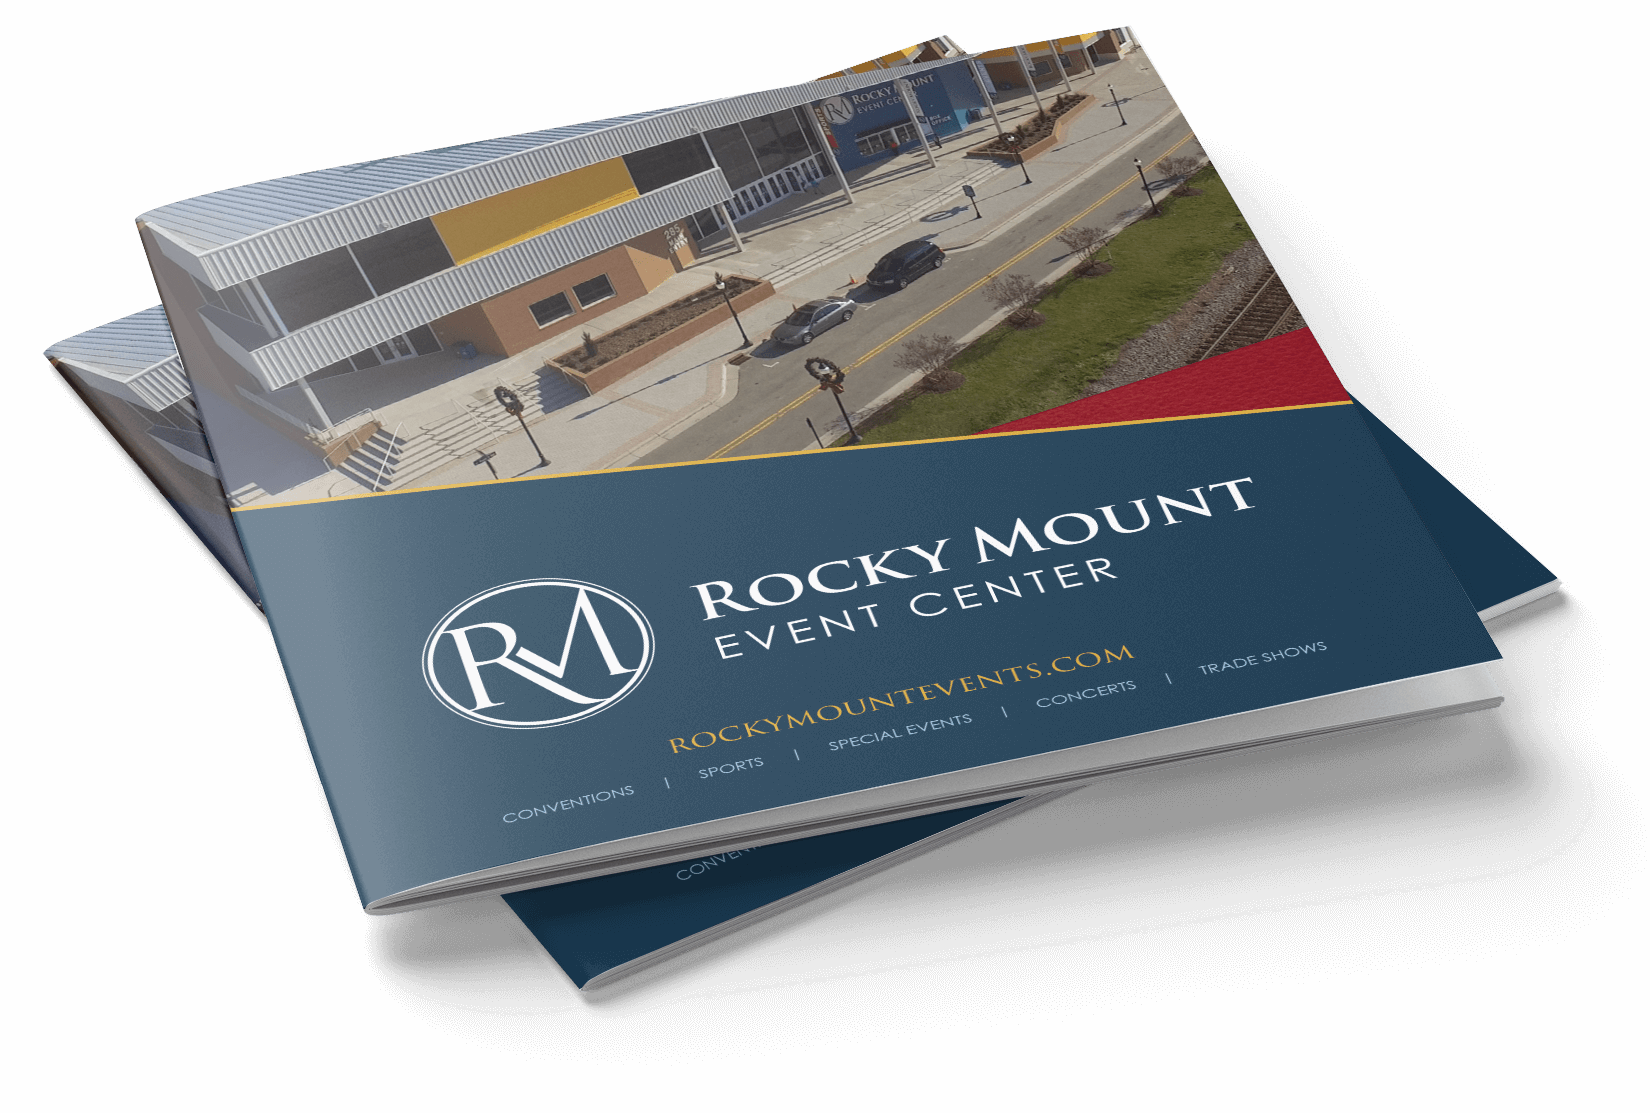 Rocky Mount Event Center Guide